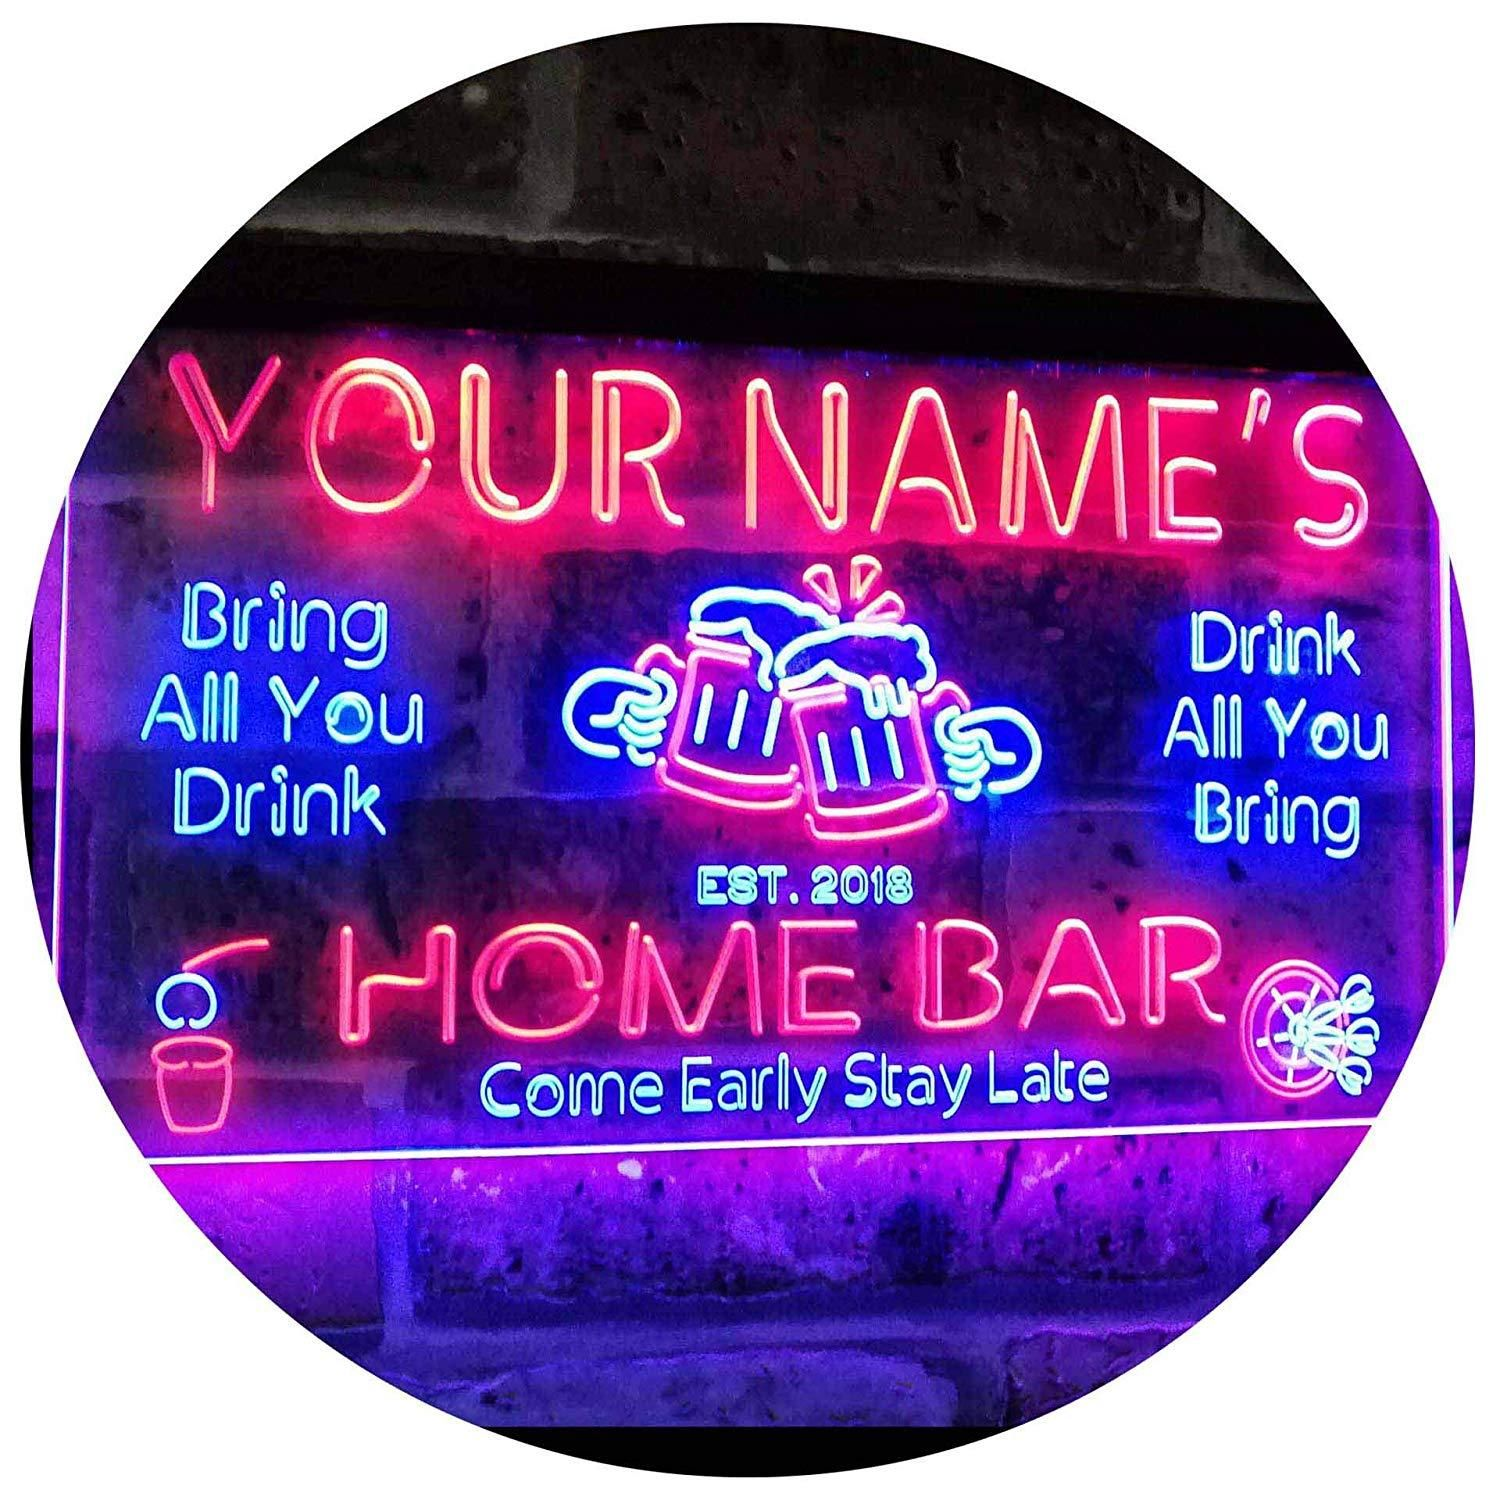 Home bar pub Sign Lighted Sign Coca-Cola Coke LED Sign Personalized